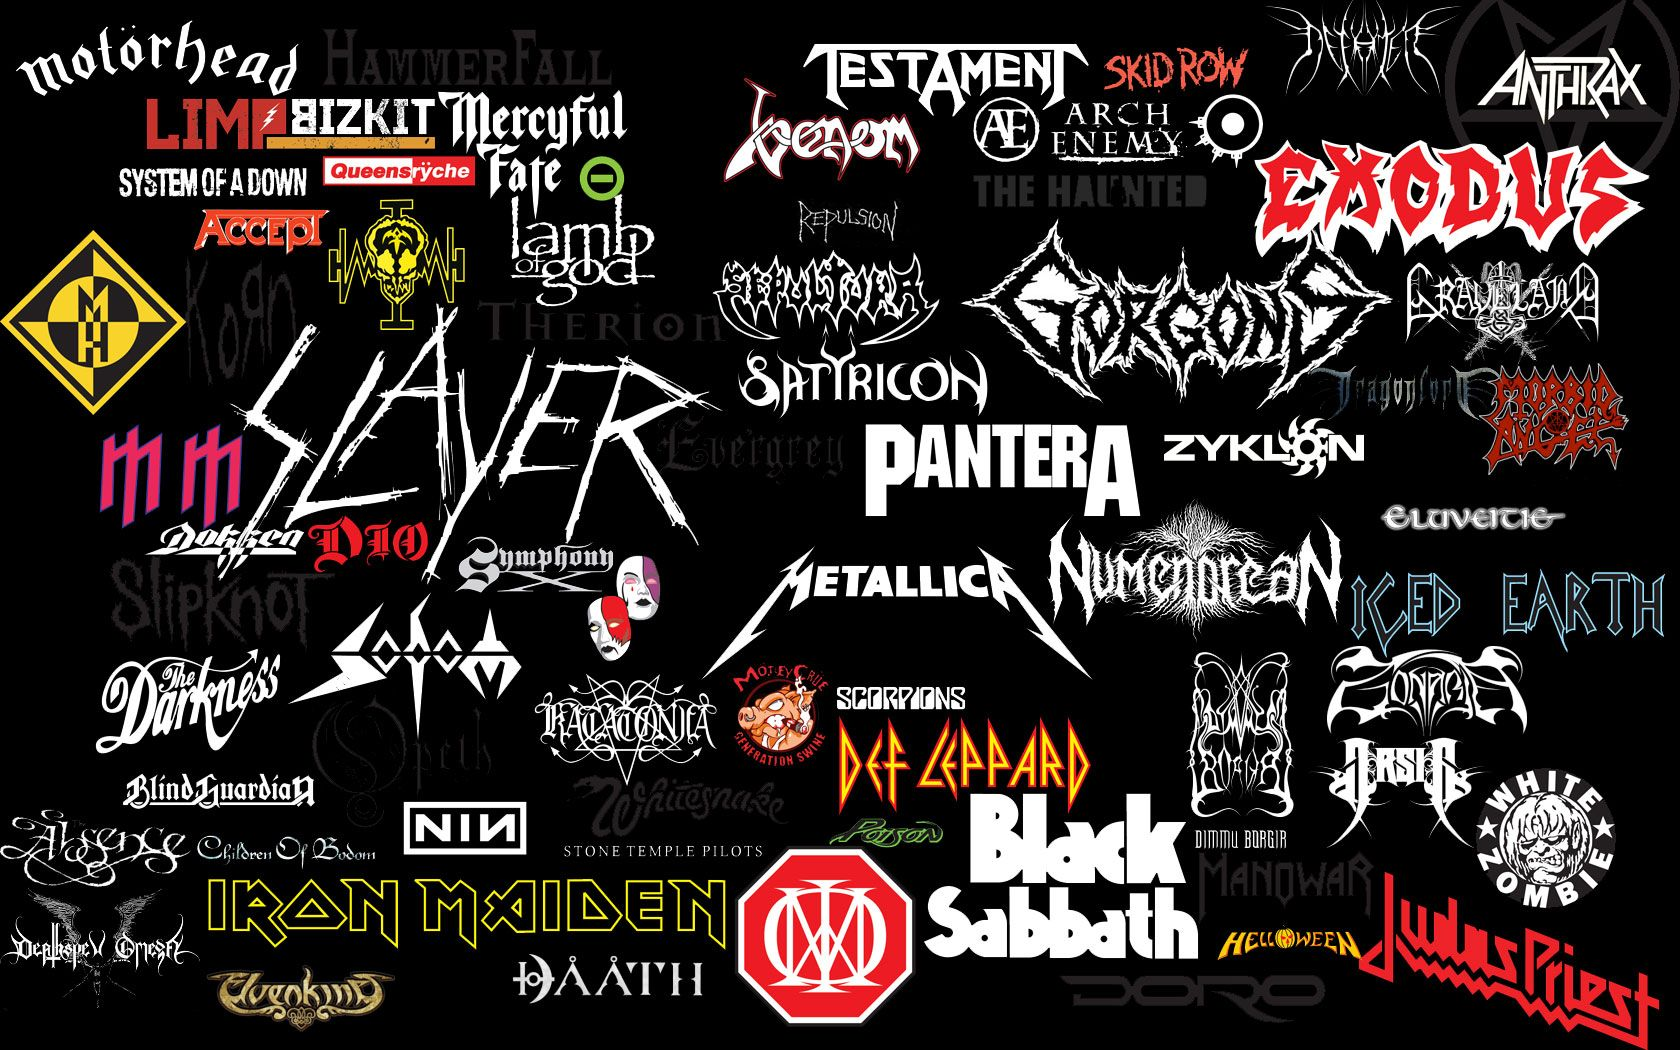 Heavy Metal Music Music Heavy Metal Wallpaper Background 1680 X 1050 Id 292330 Metal Music Quotes Metal Band Logos Metal Music